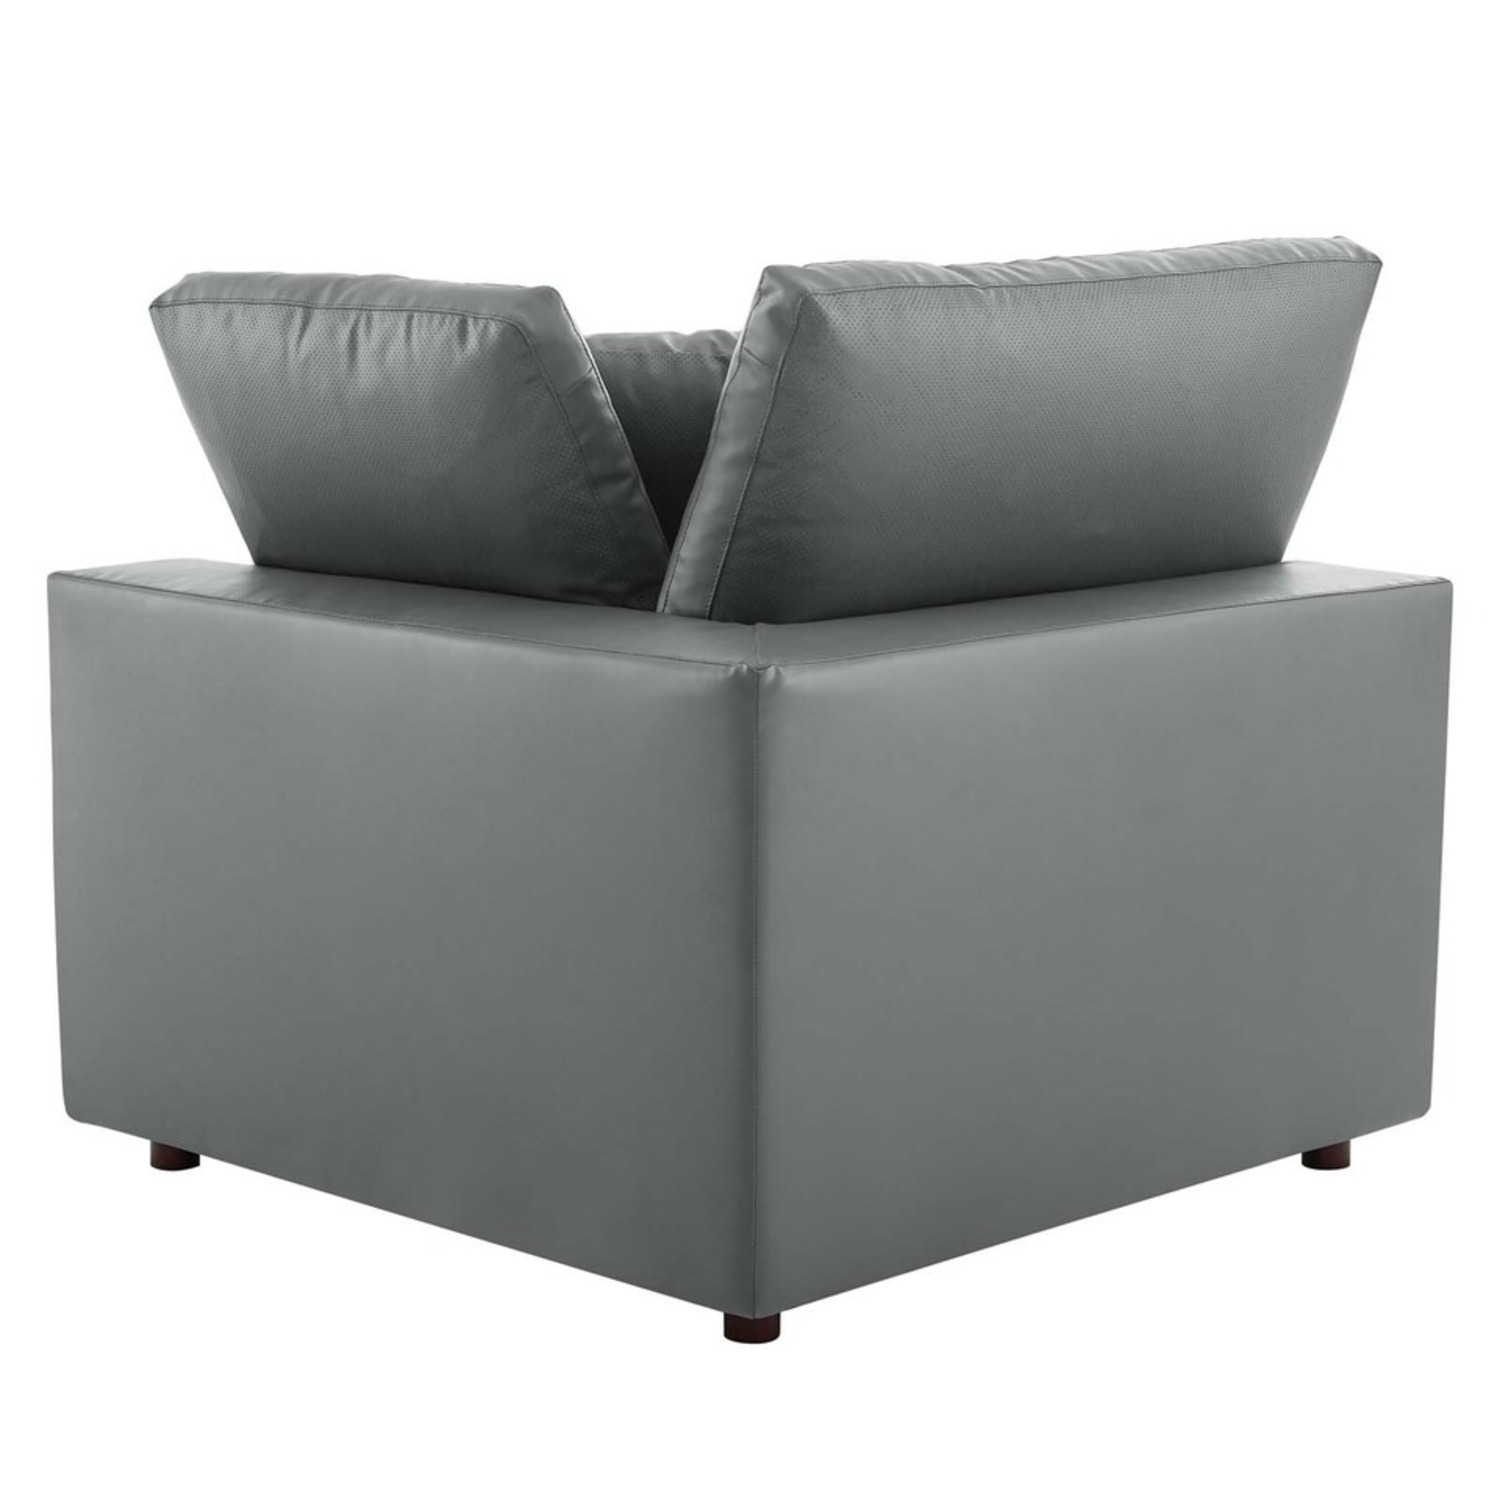 8-Piece Sectional Sofa In Gray Vegan Leather - image-6